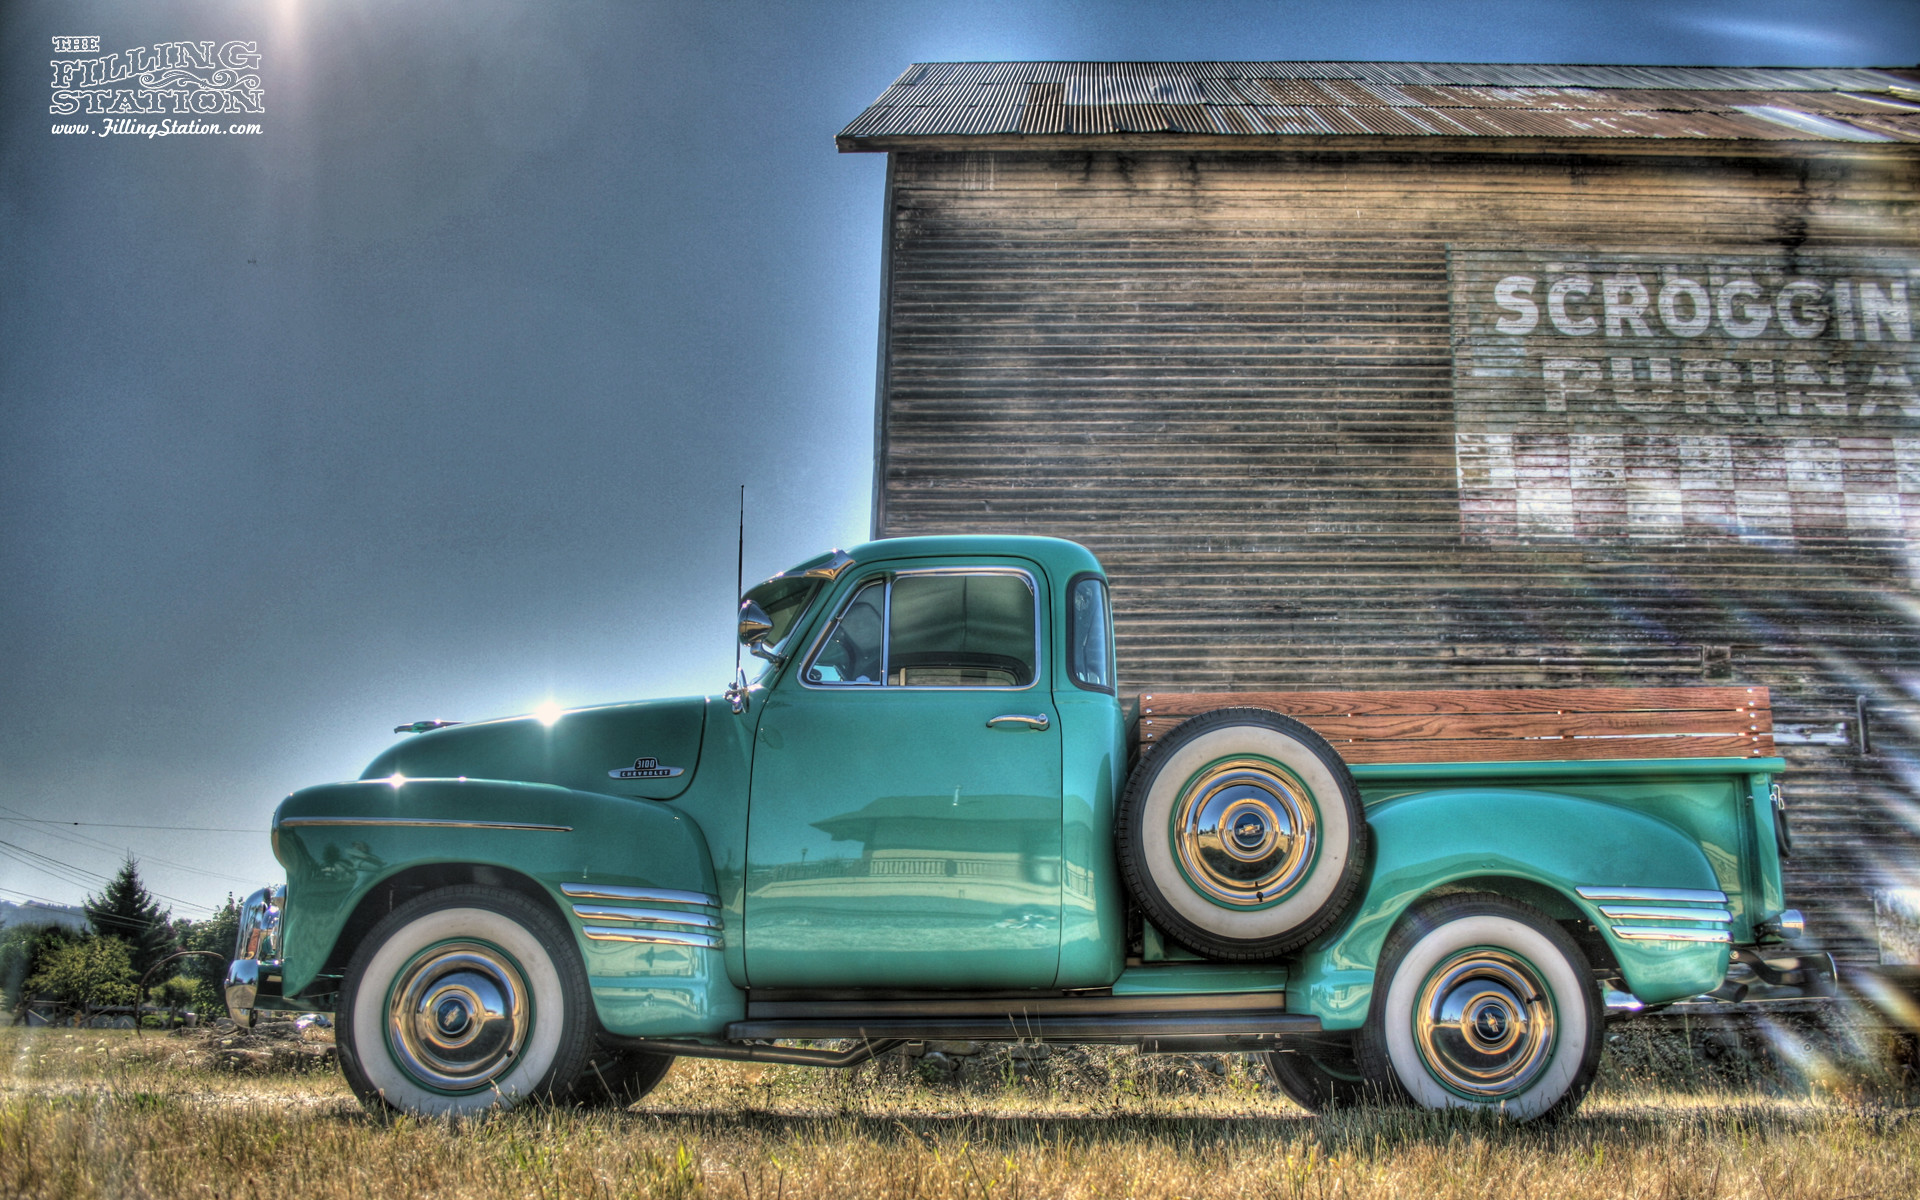 1920x1200 Chevy Truck Wallpaper Wallpapers) – Wallpapers and Backgrounds